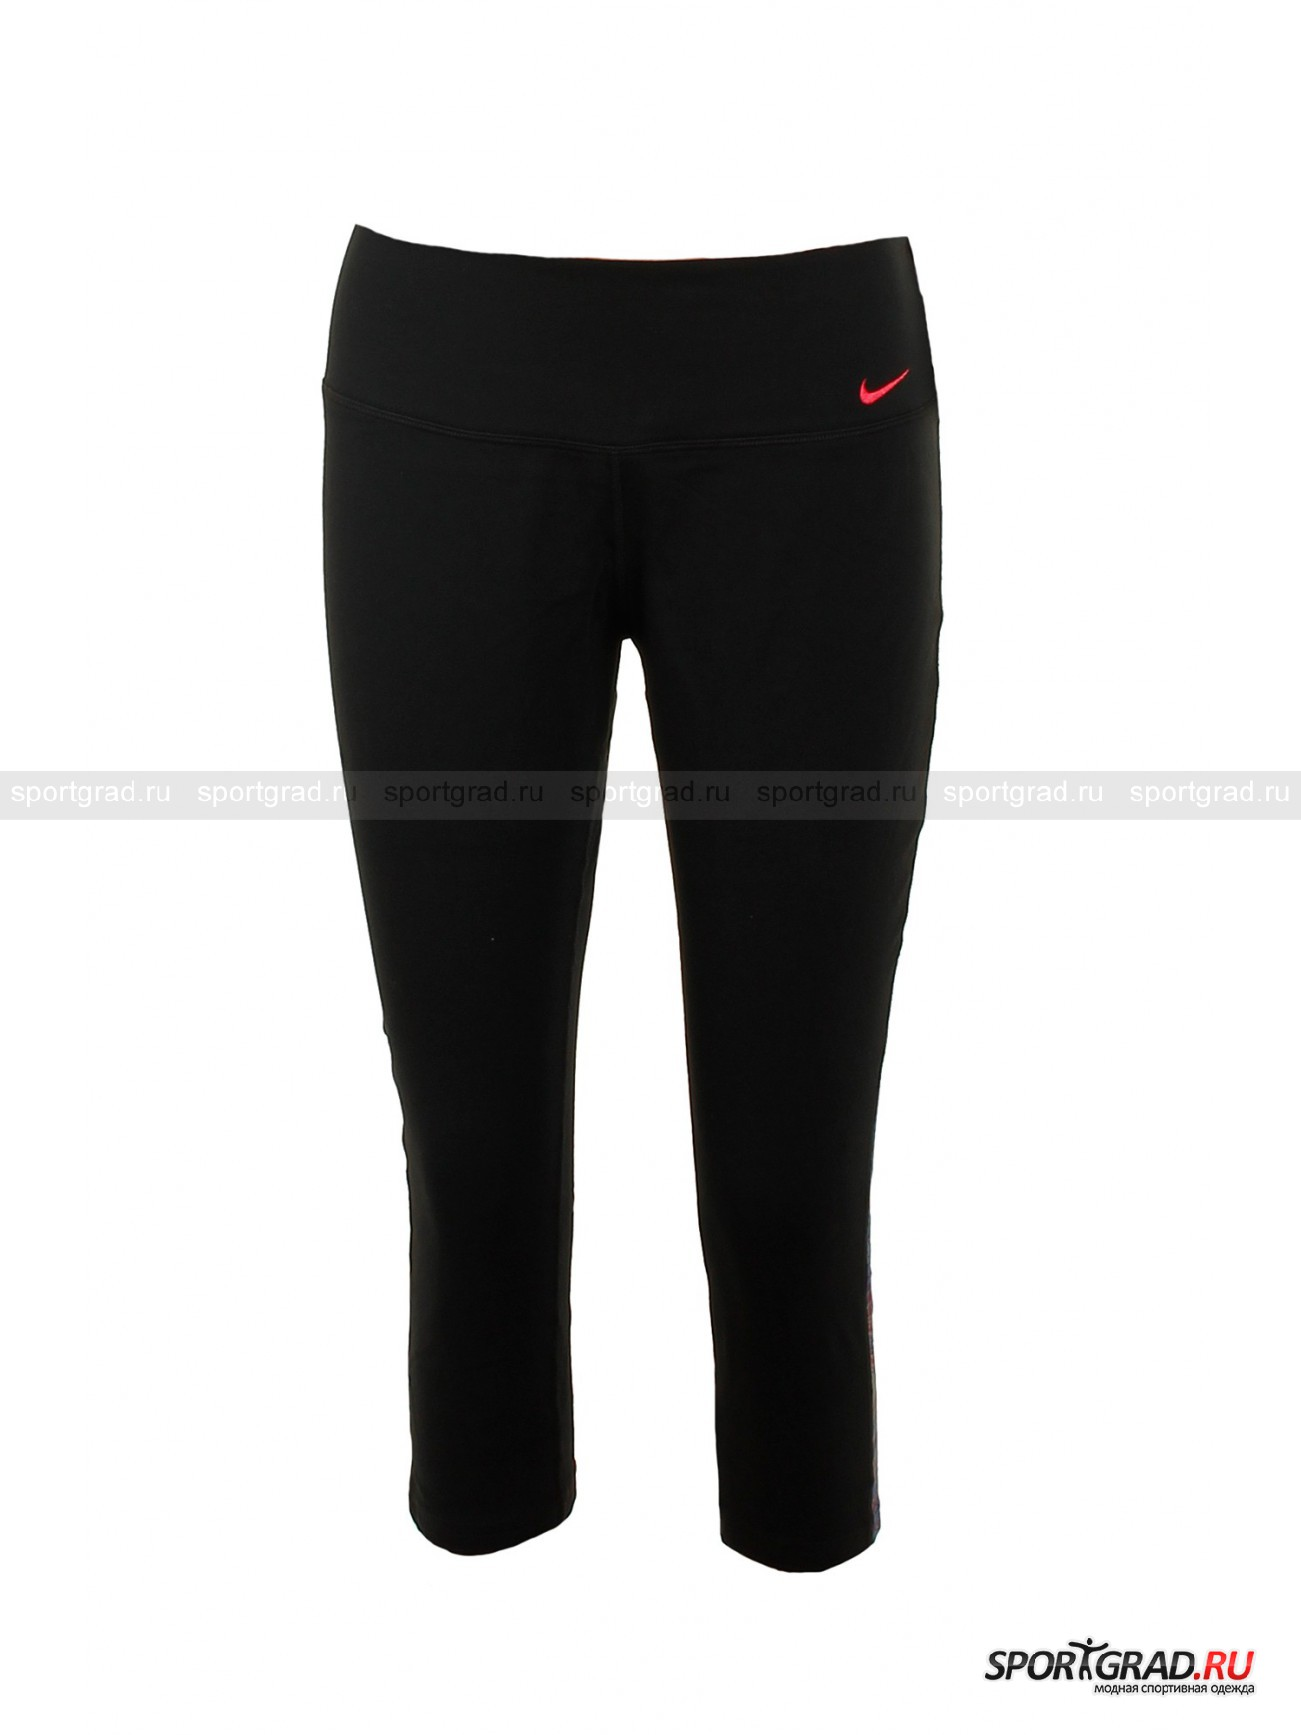 Капри жен GFX TIGHT COTTON CAPRI 2 NIKE